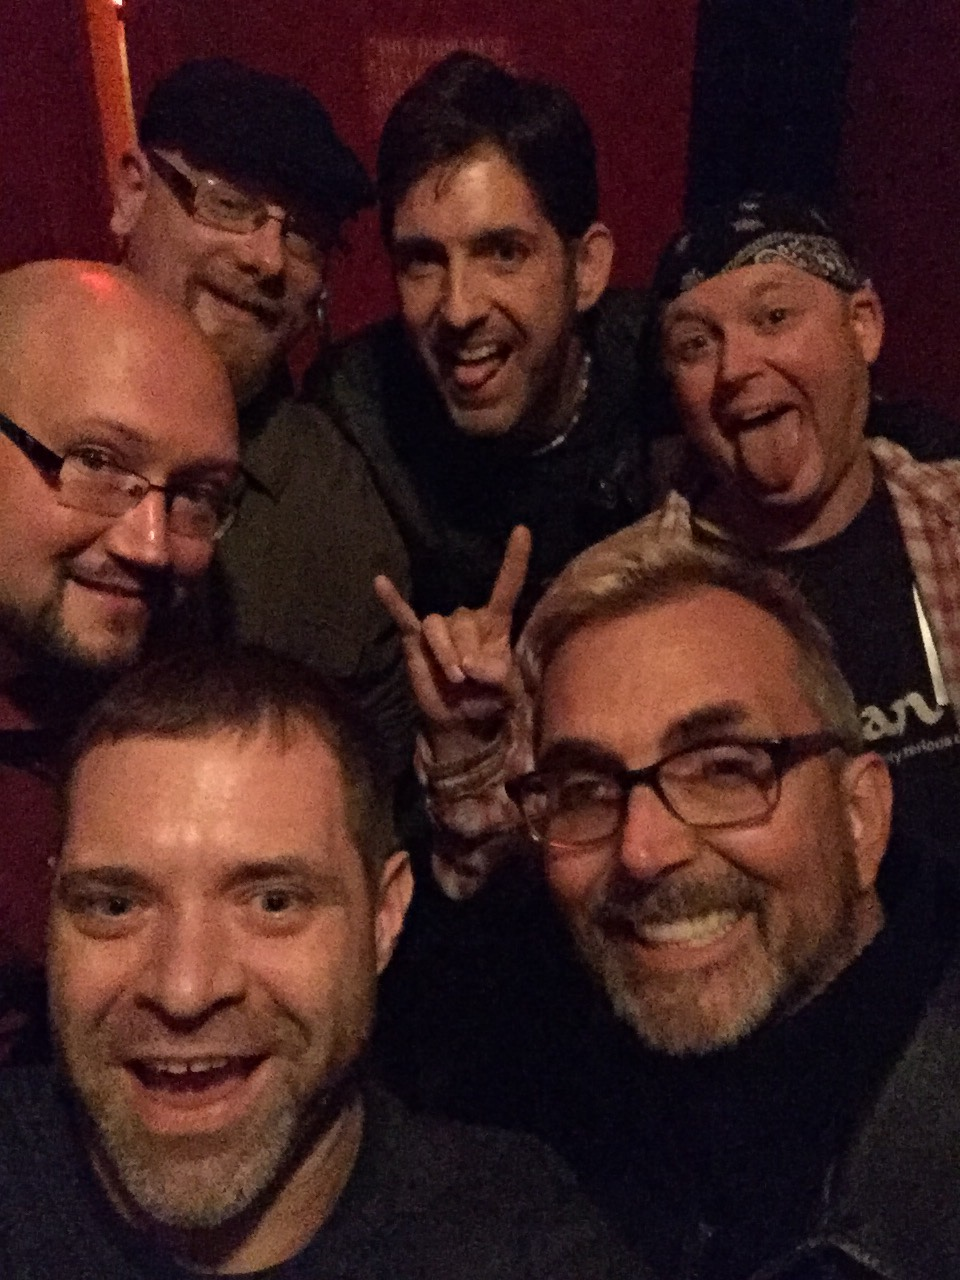 That '90s Band with Art Alexakis of Everclear